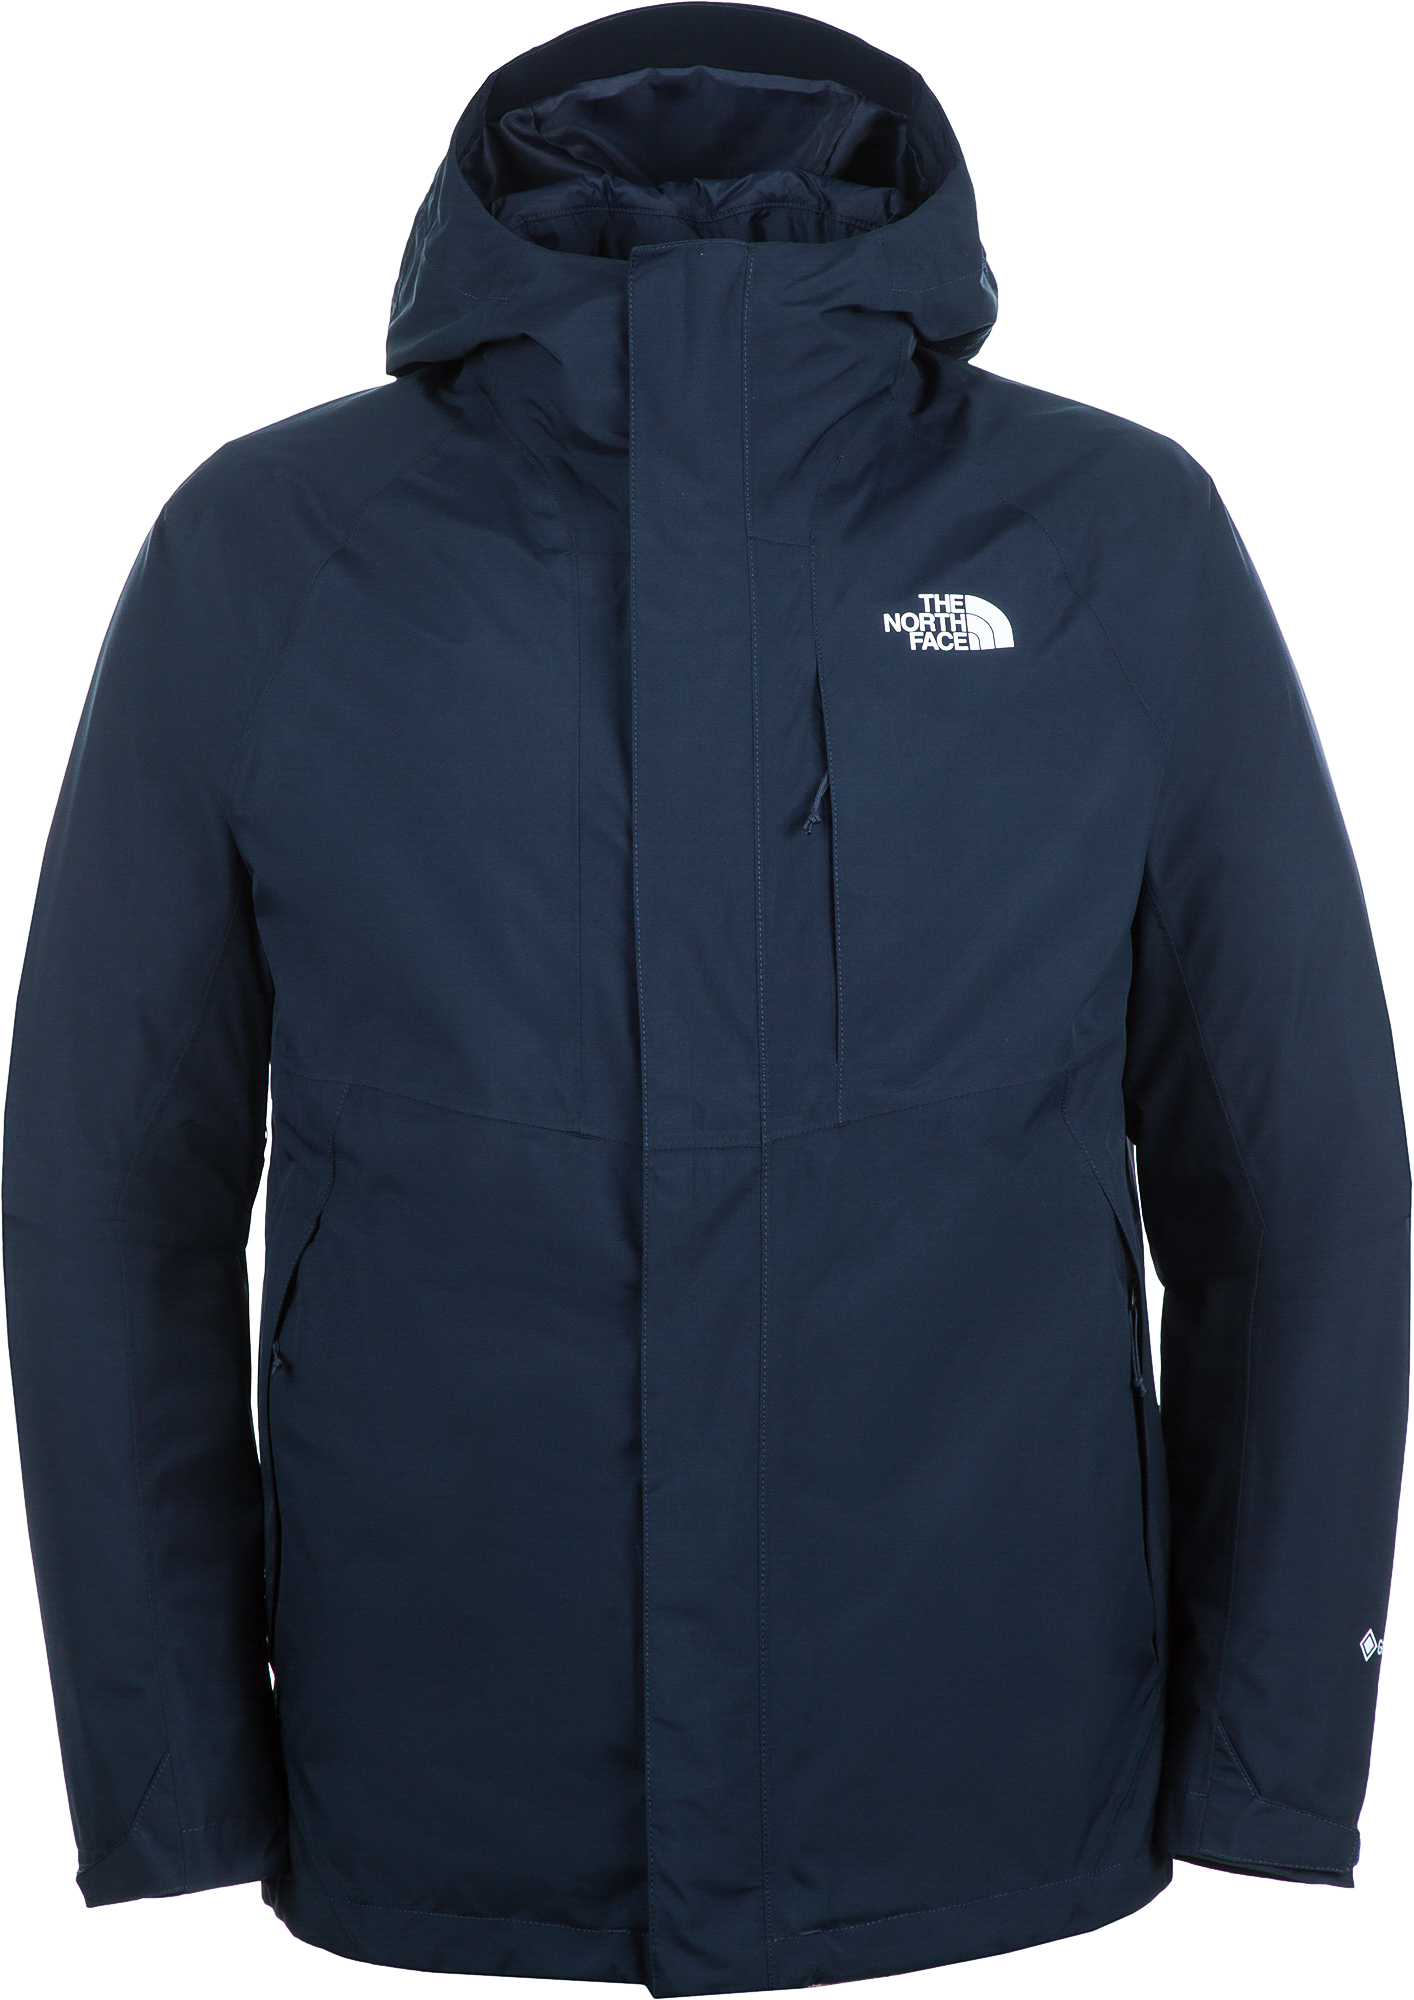 The North Face Куртка 3 в 1 мужская The North Face Mountain Light Triclimate®, размер 46 куртка the north face the north face summit l2 fuseform fleece 1 2 zip hoodie